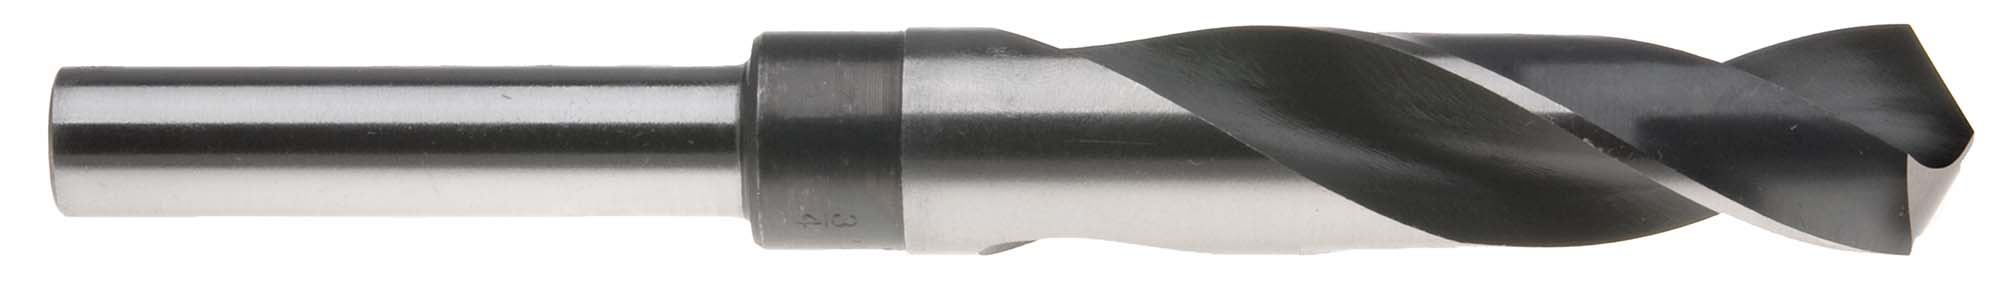 "61/64"" USA Drill Bit with 1/2"" Shank (S+D Type) High Speed Steel"